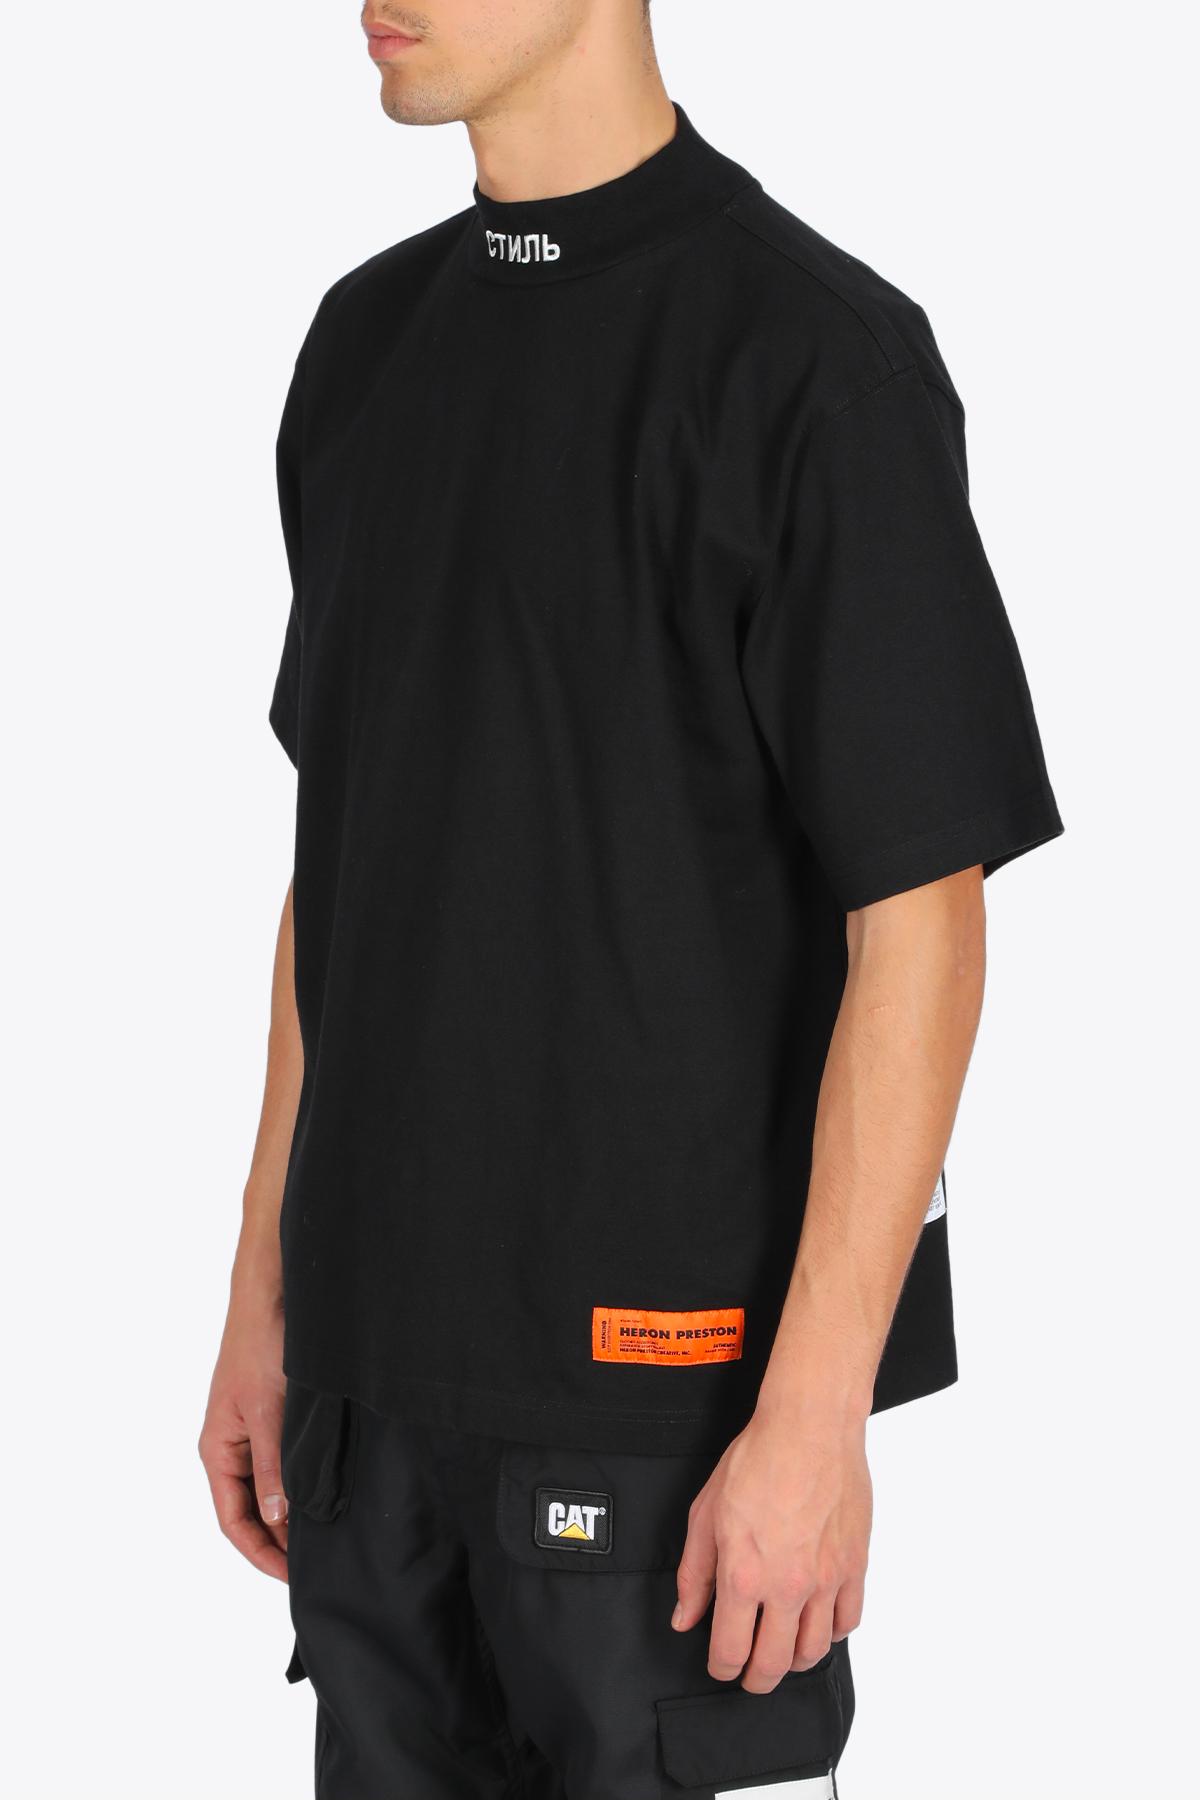 ss turtleneck HERON PRESTON | 8 | HMAA021F20JER0011001 SS TURTLENECKBLACK/WHITE